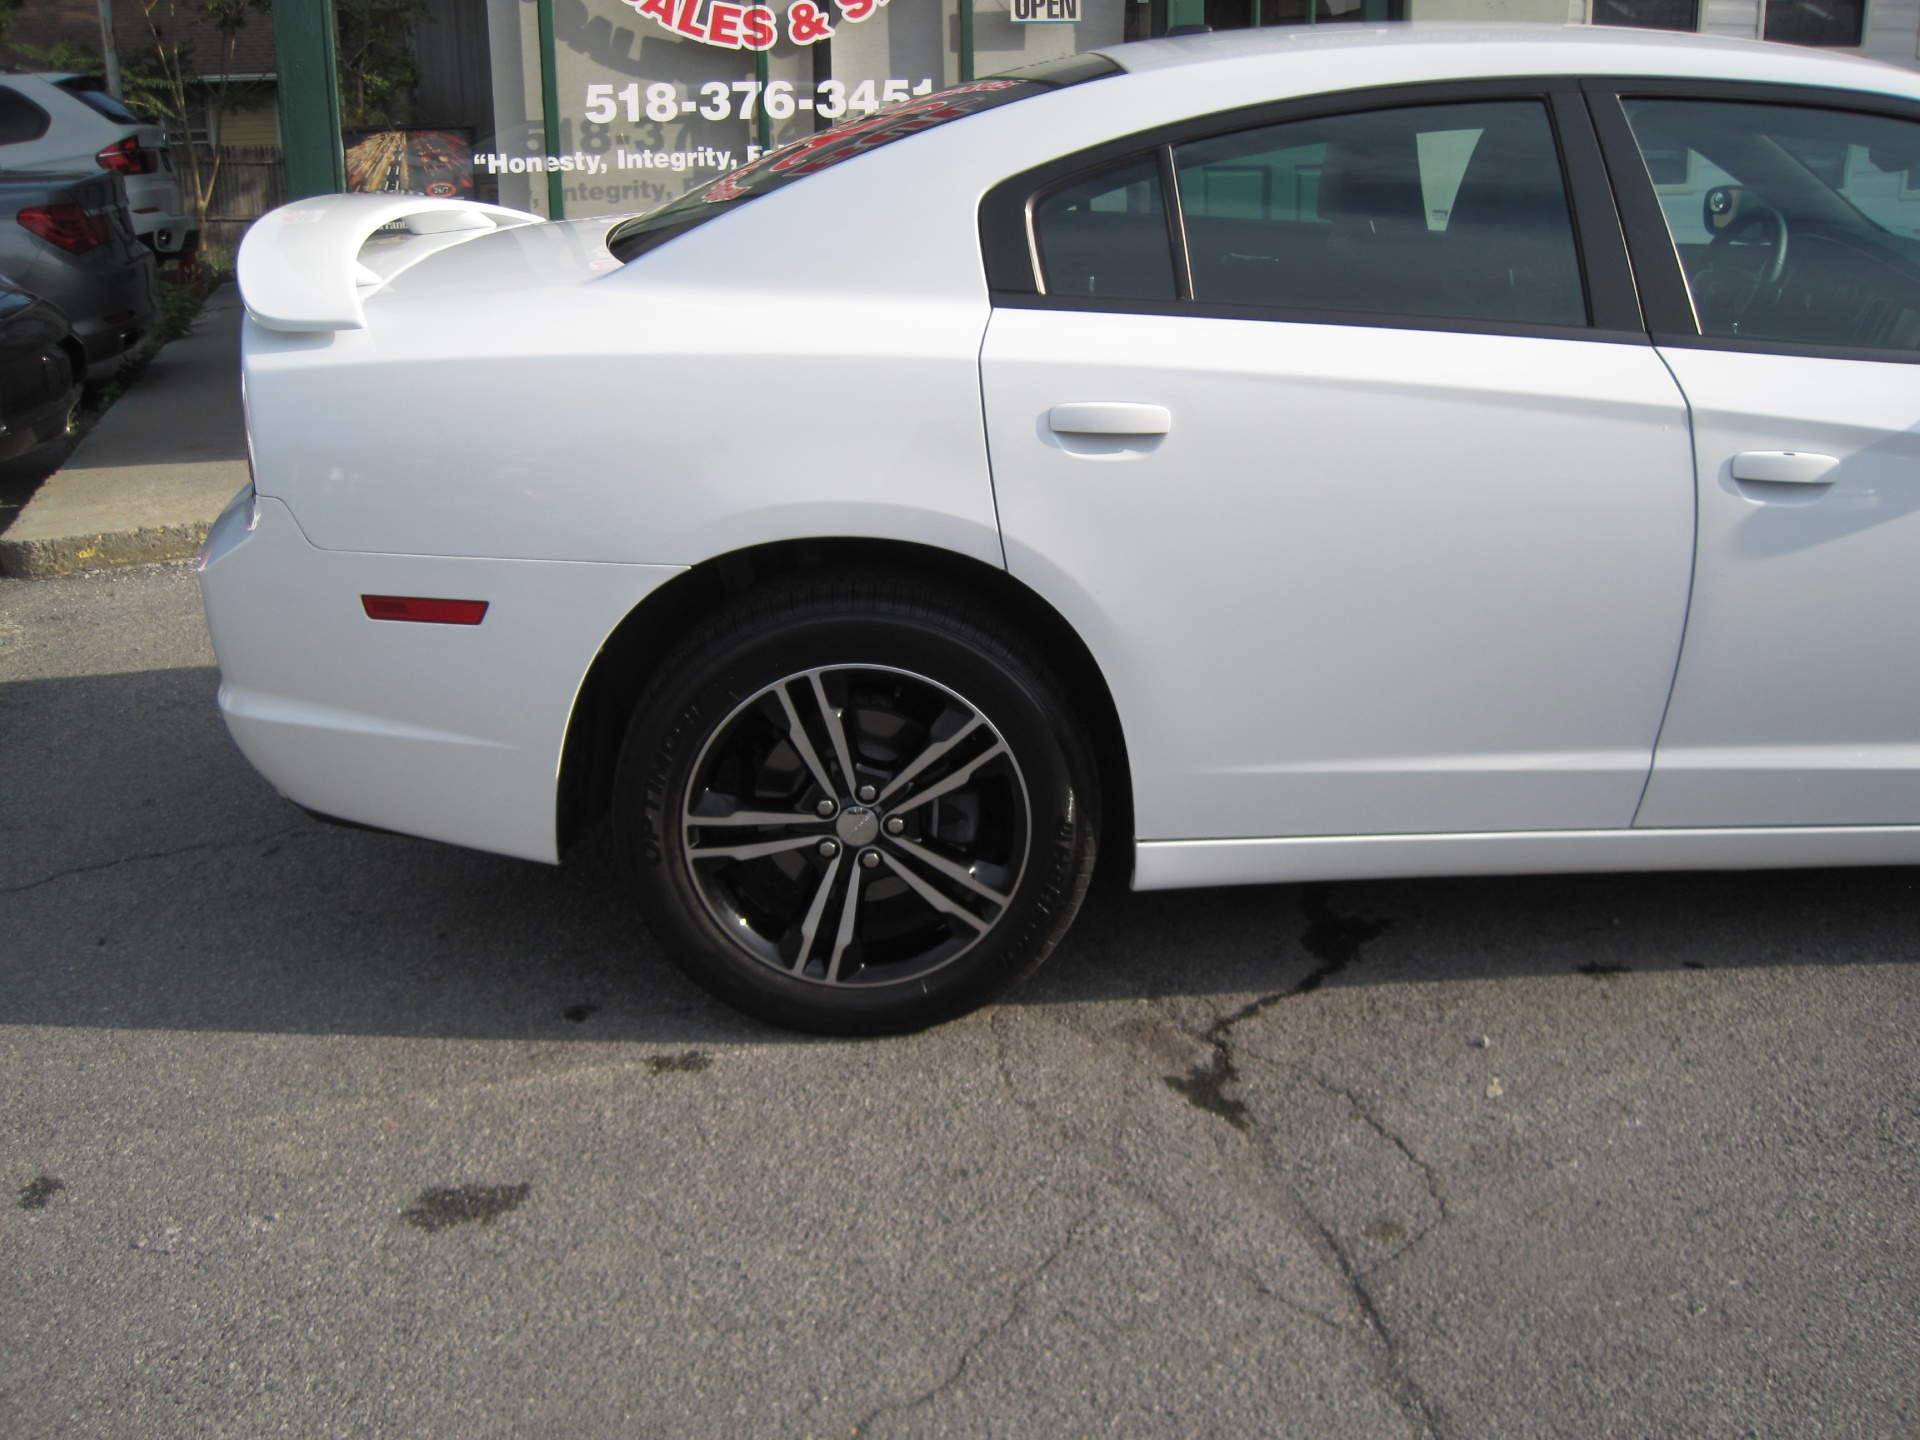 2014 dodge charger sxt plus like new,low miles,loaded,navigation